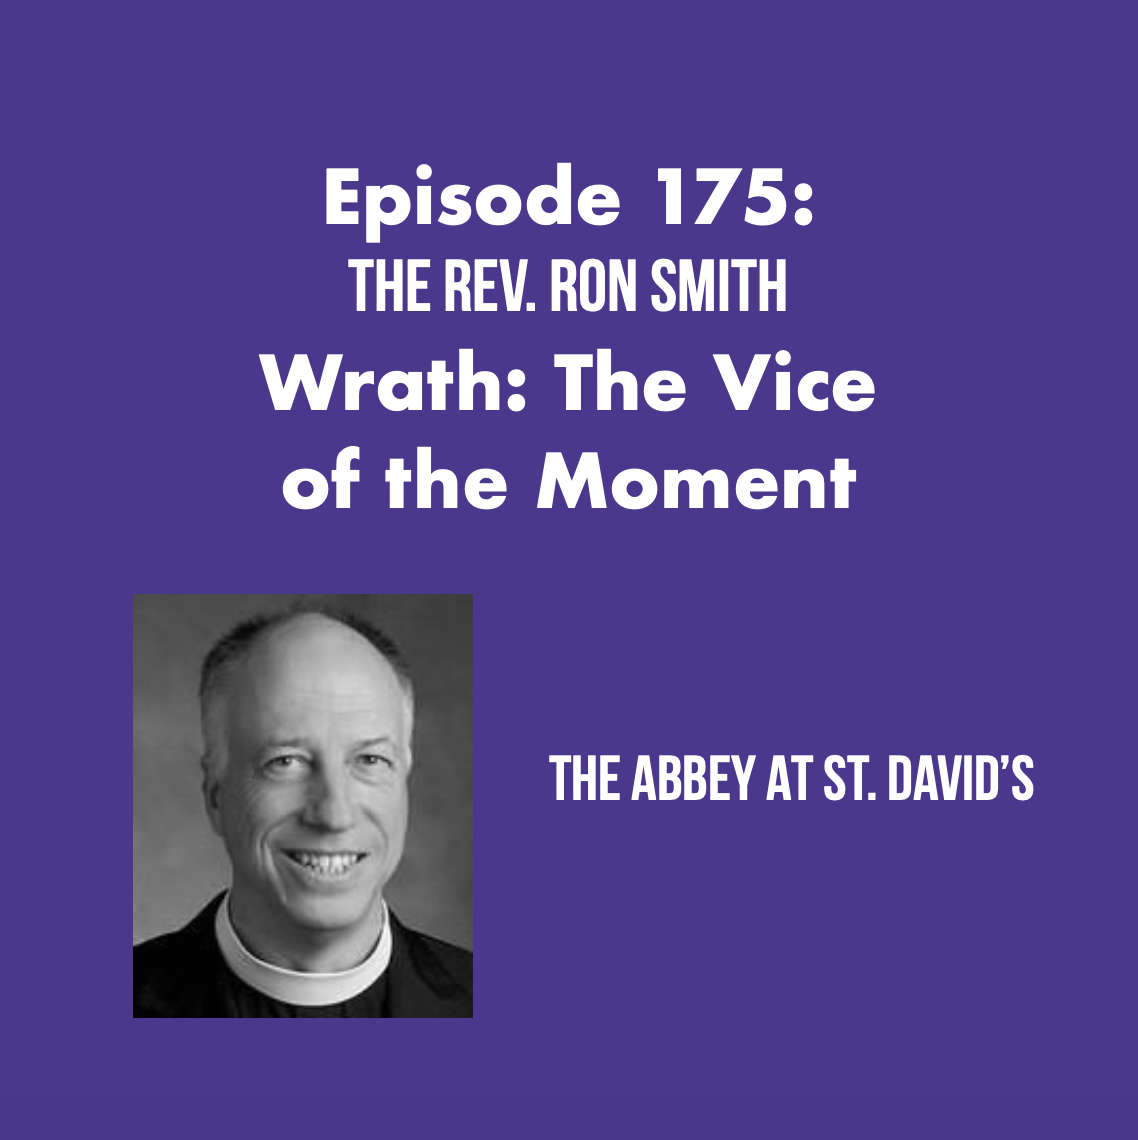 Episode 175: Wrath: The Vice of the Moment. Anger and Its Antidote with the Rev. Ron Smith